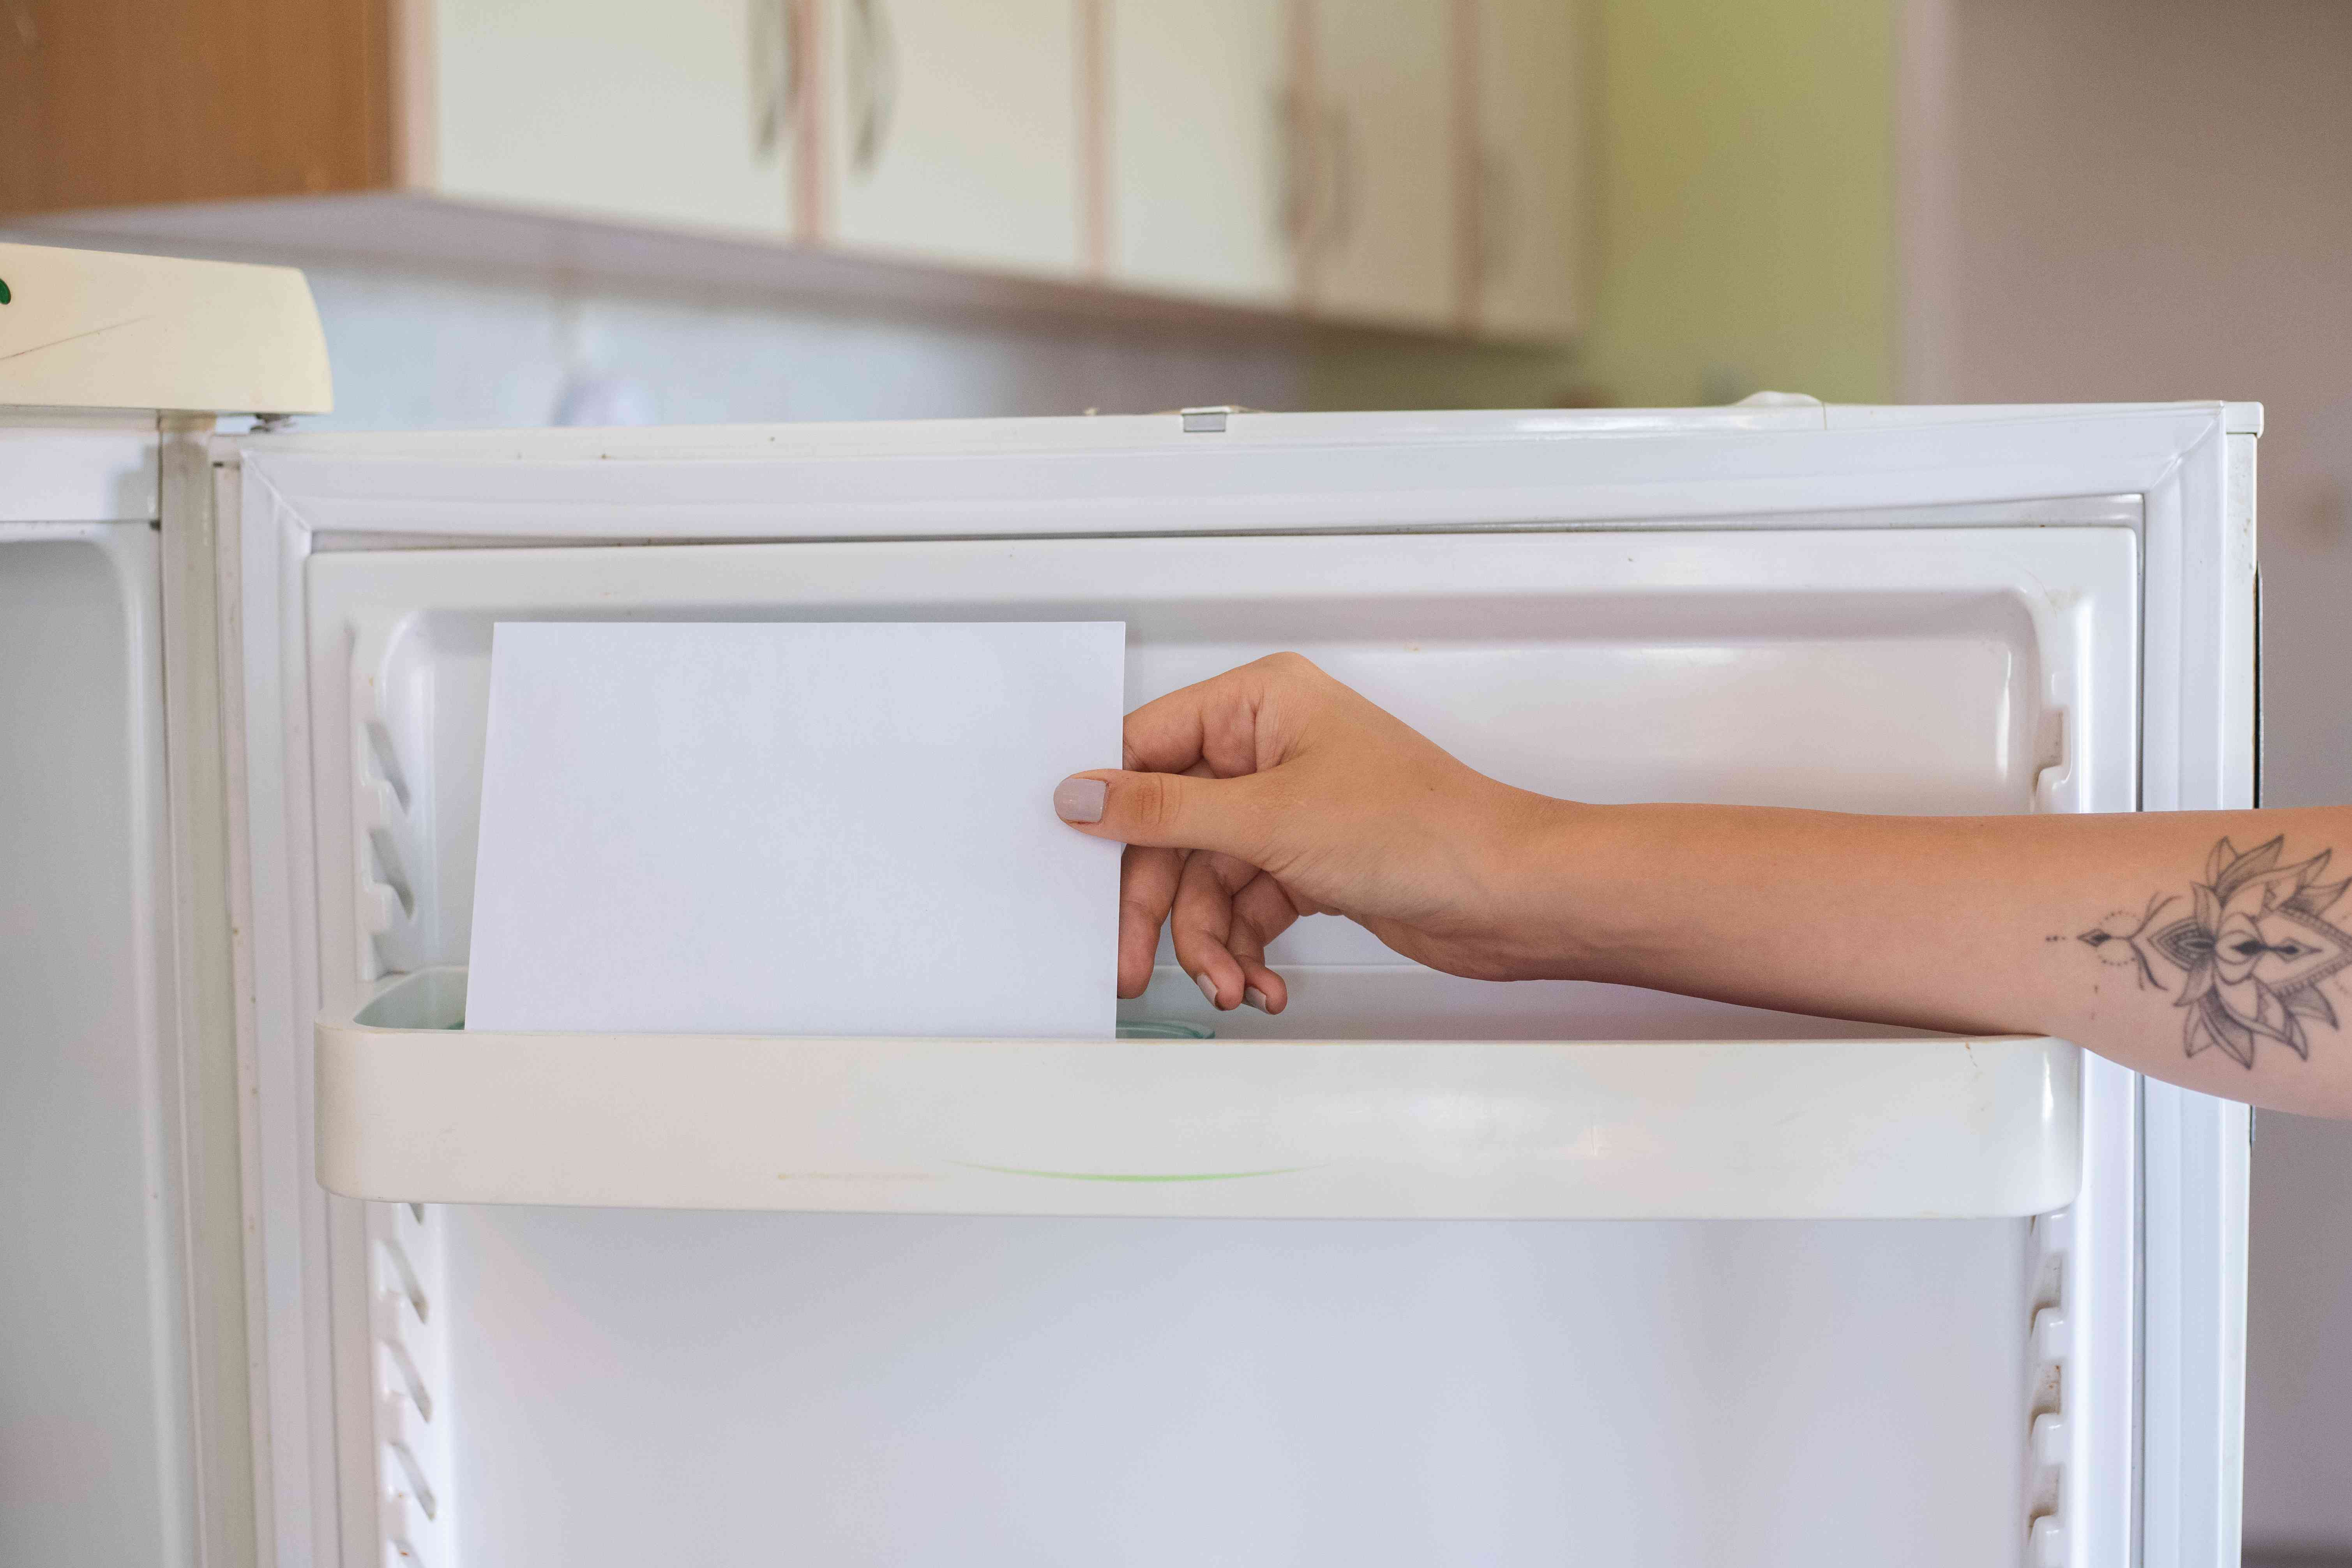 tattooed hand places dried tomato seeds in white envelope in kitchen freezer